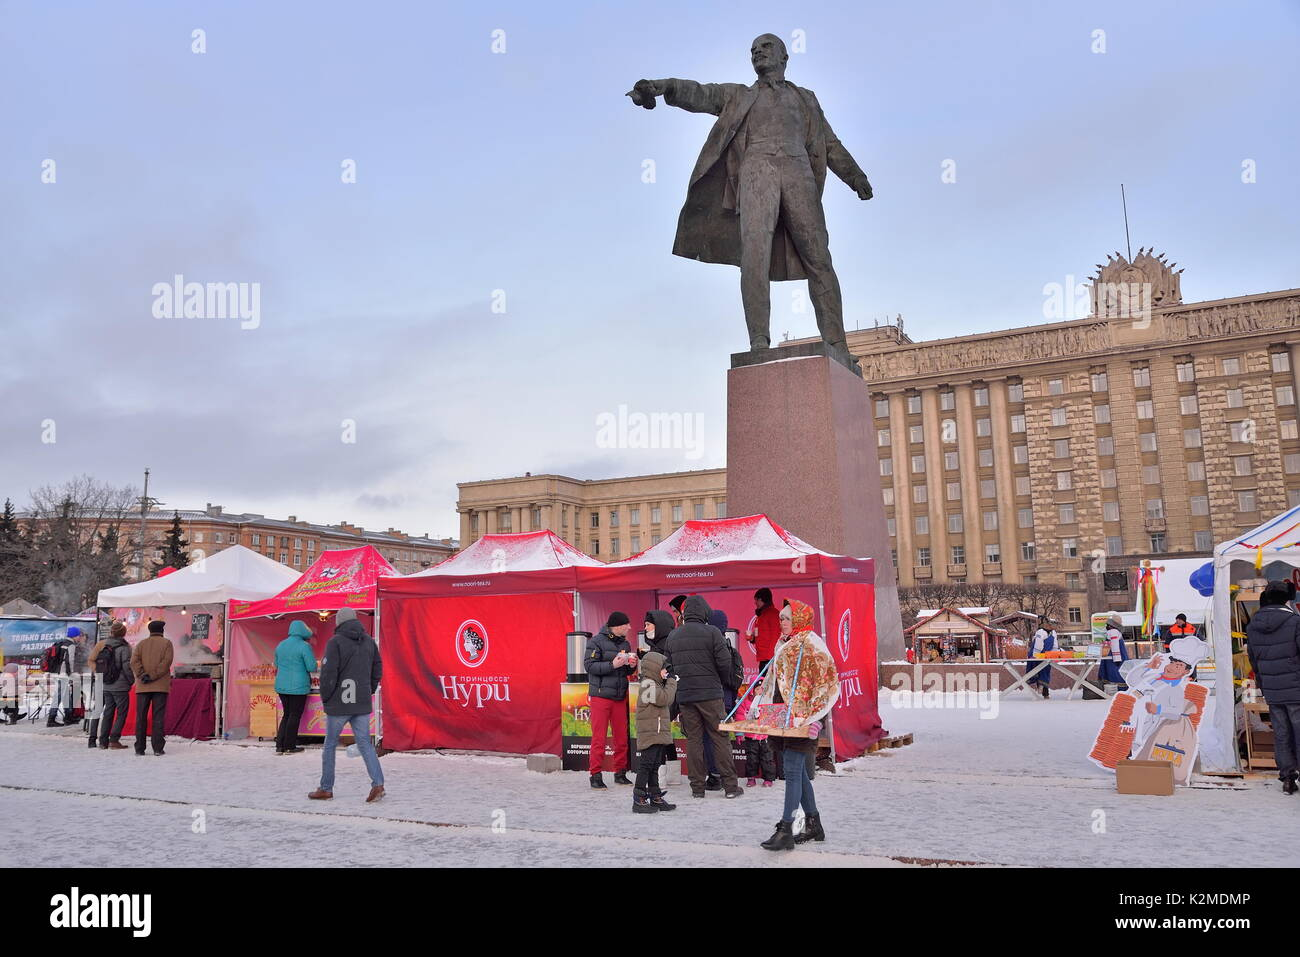 Tea tents under a monument to Vladimir Lenin during the carnival - Stock Image